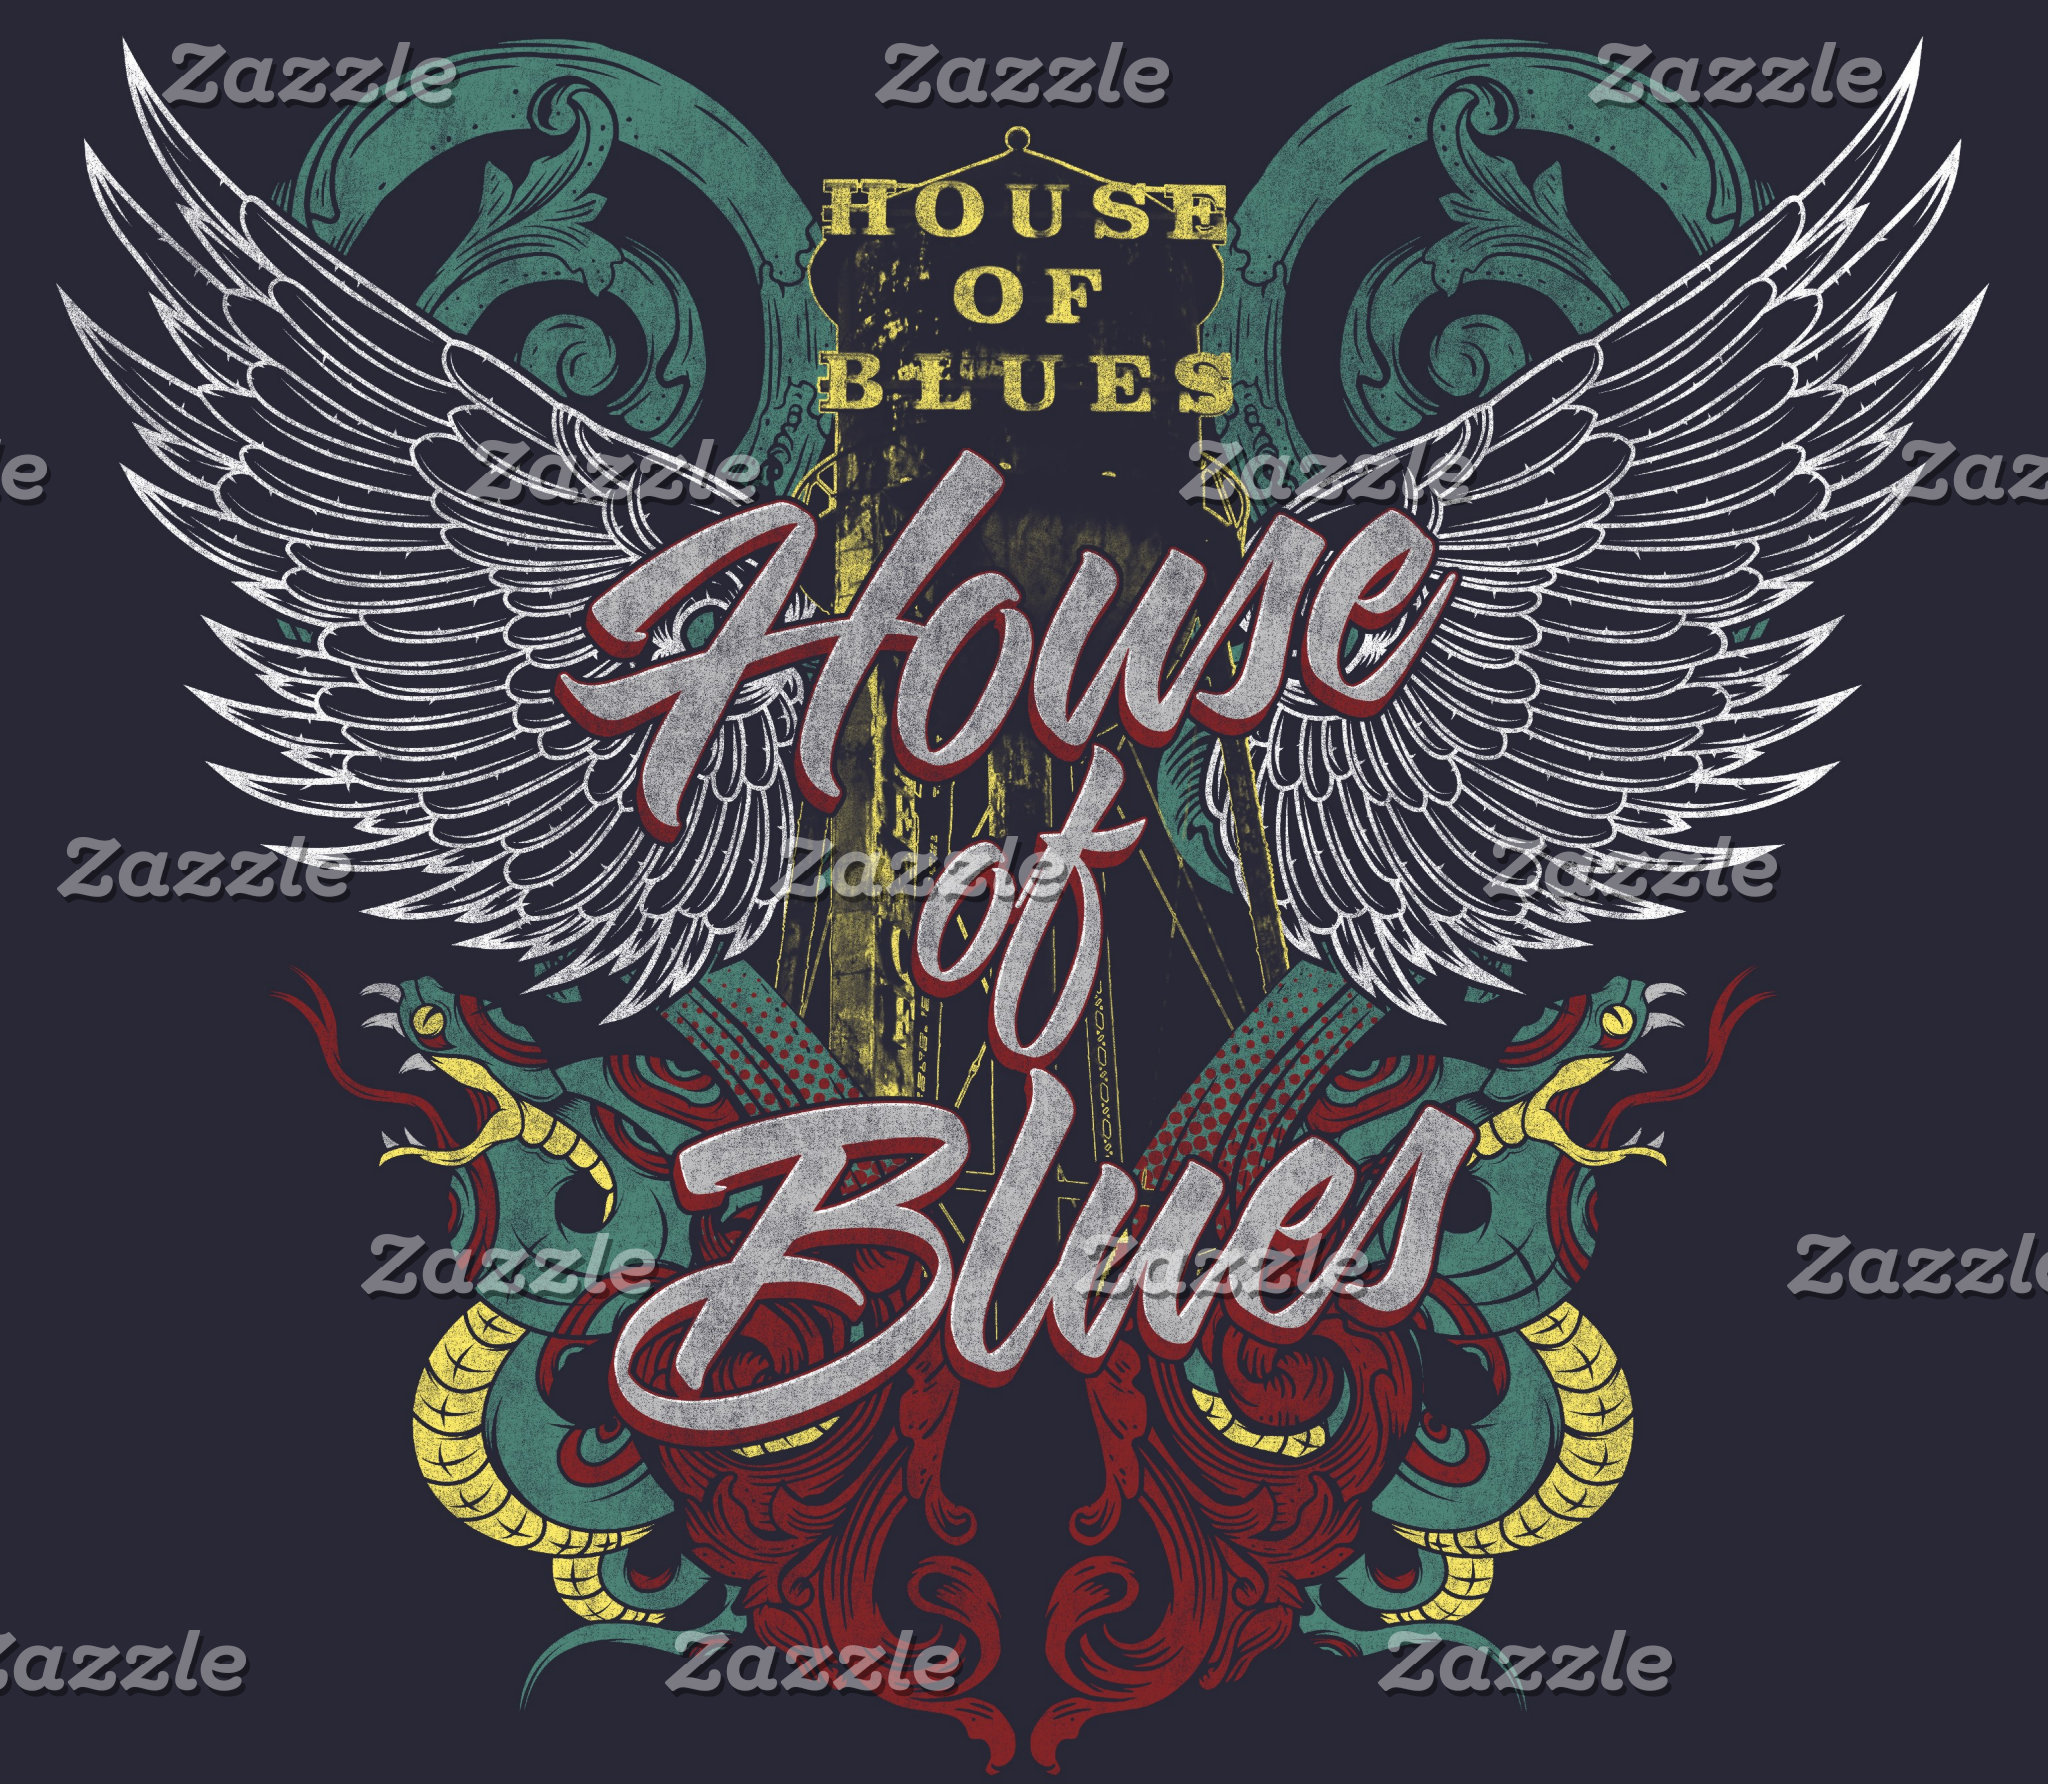 House of Blues Winged Design